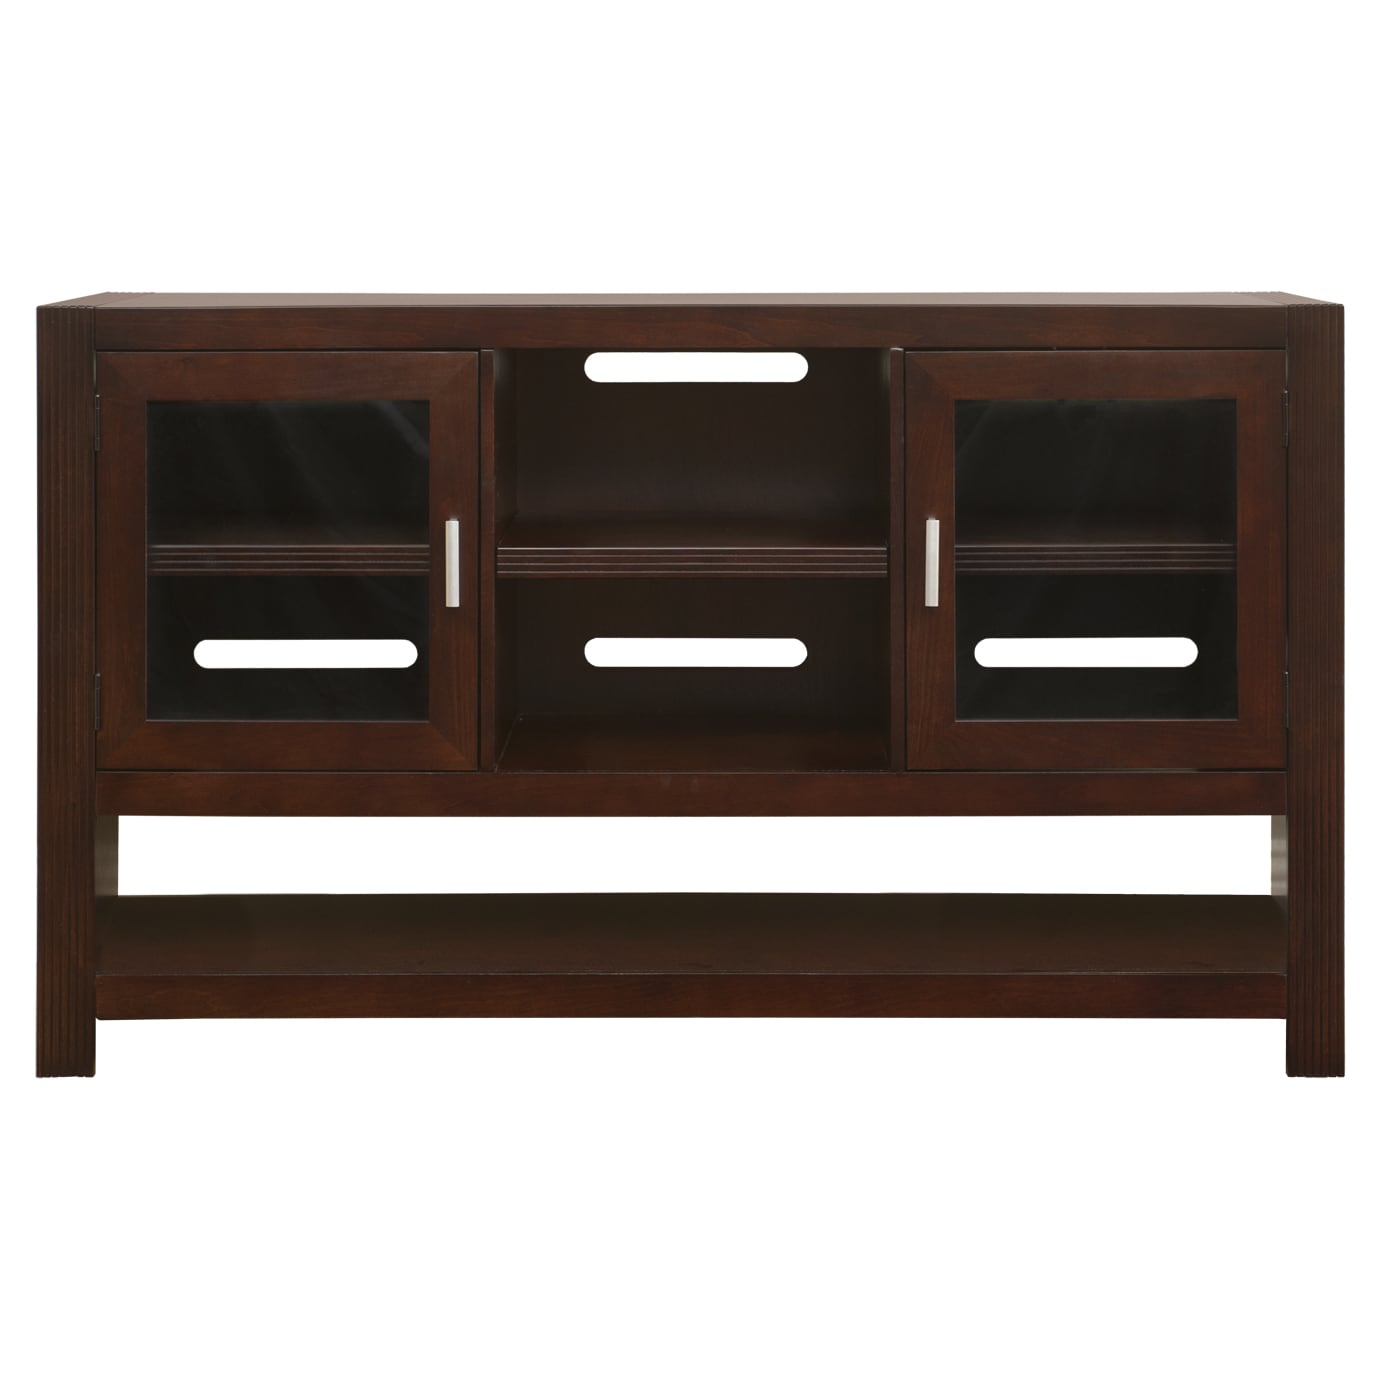 Shop Camus Brown Wood 36 Inch Tall Tv Stand Free Shipping Today